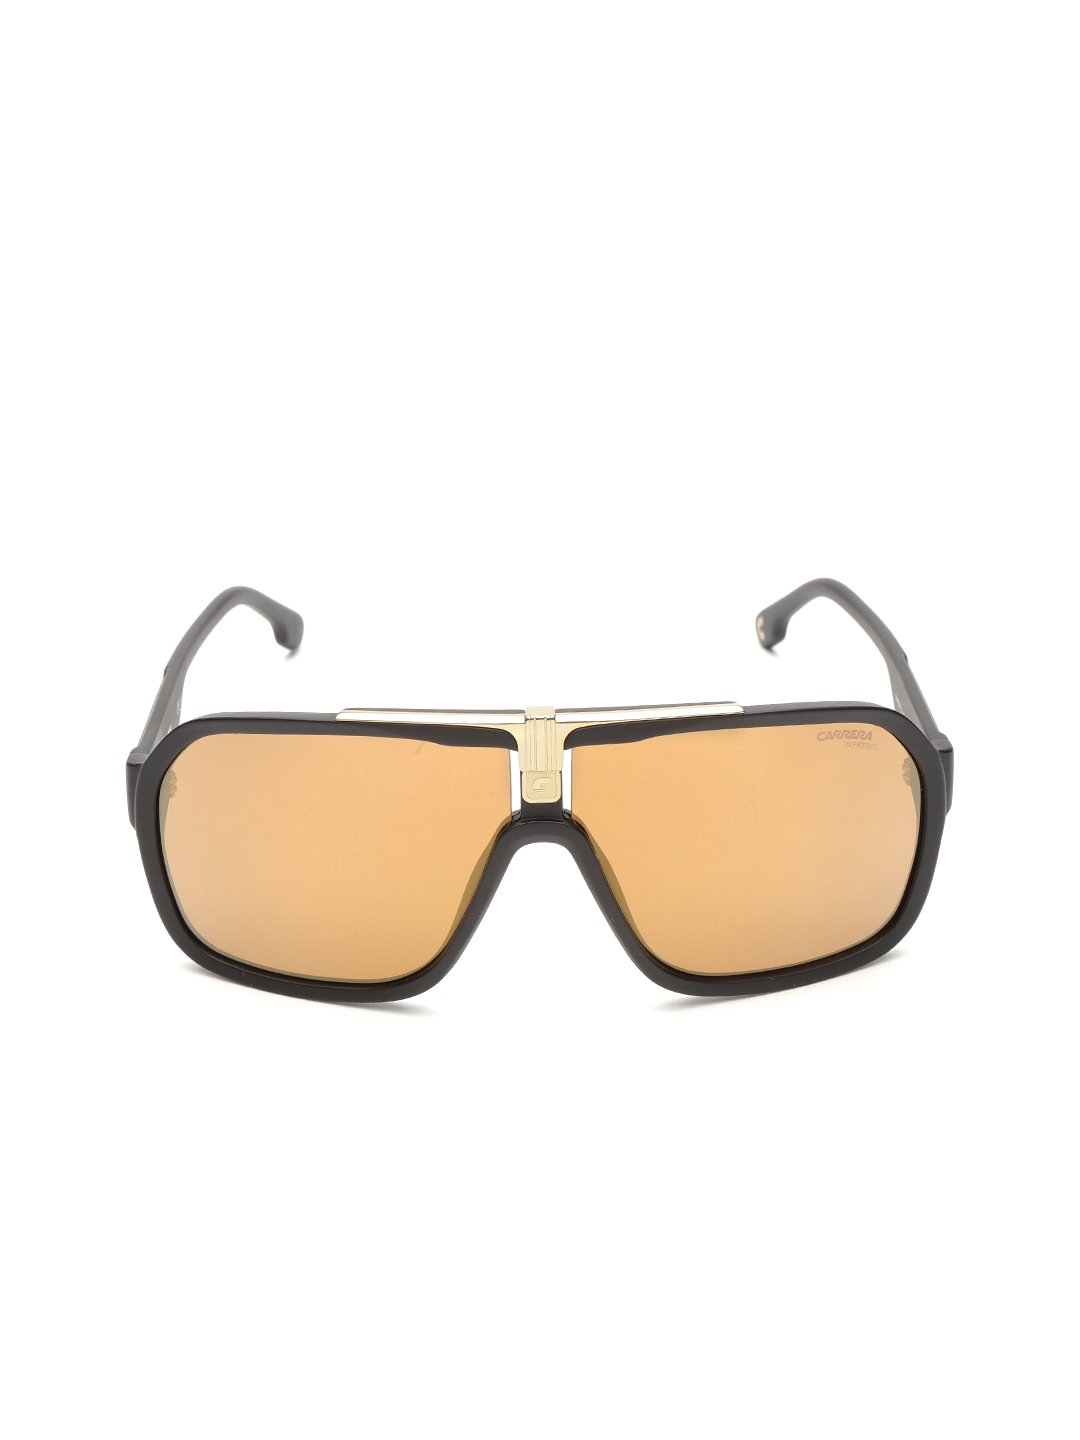 62549def8 Buy Carrera Unisex Square Sunglasses 1014/S I46 65K1 - Sunglasses ...